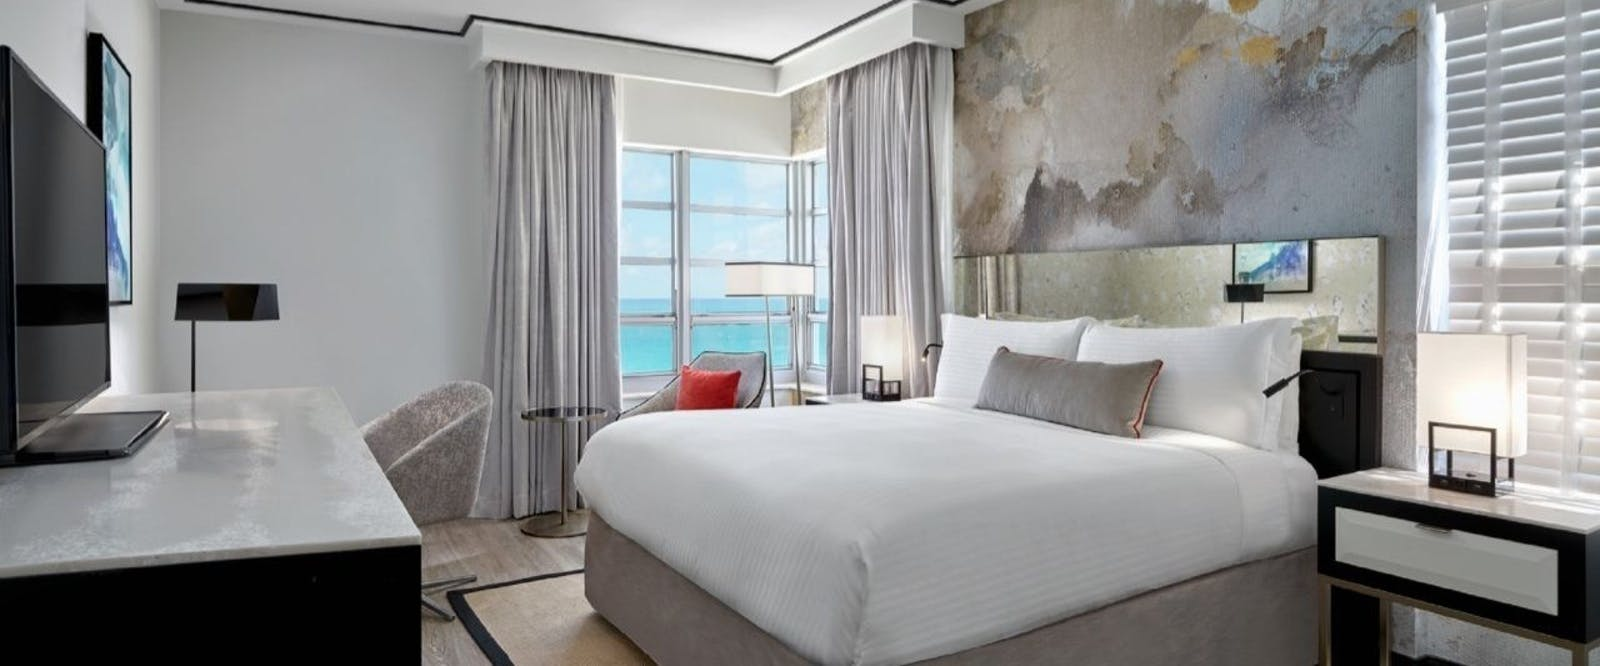 st moritz ocean front king room at loews miami beach